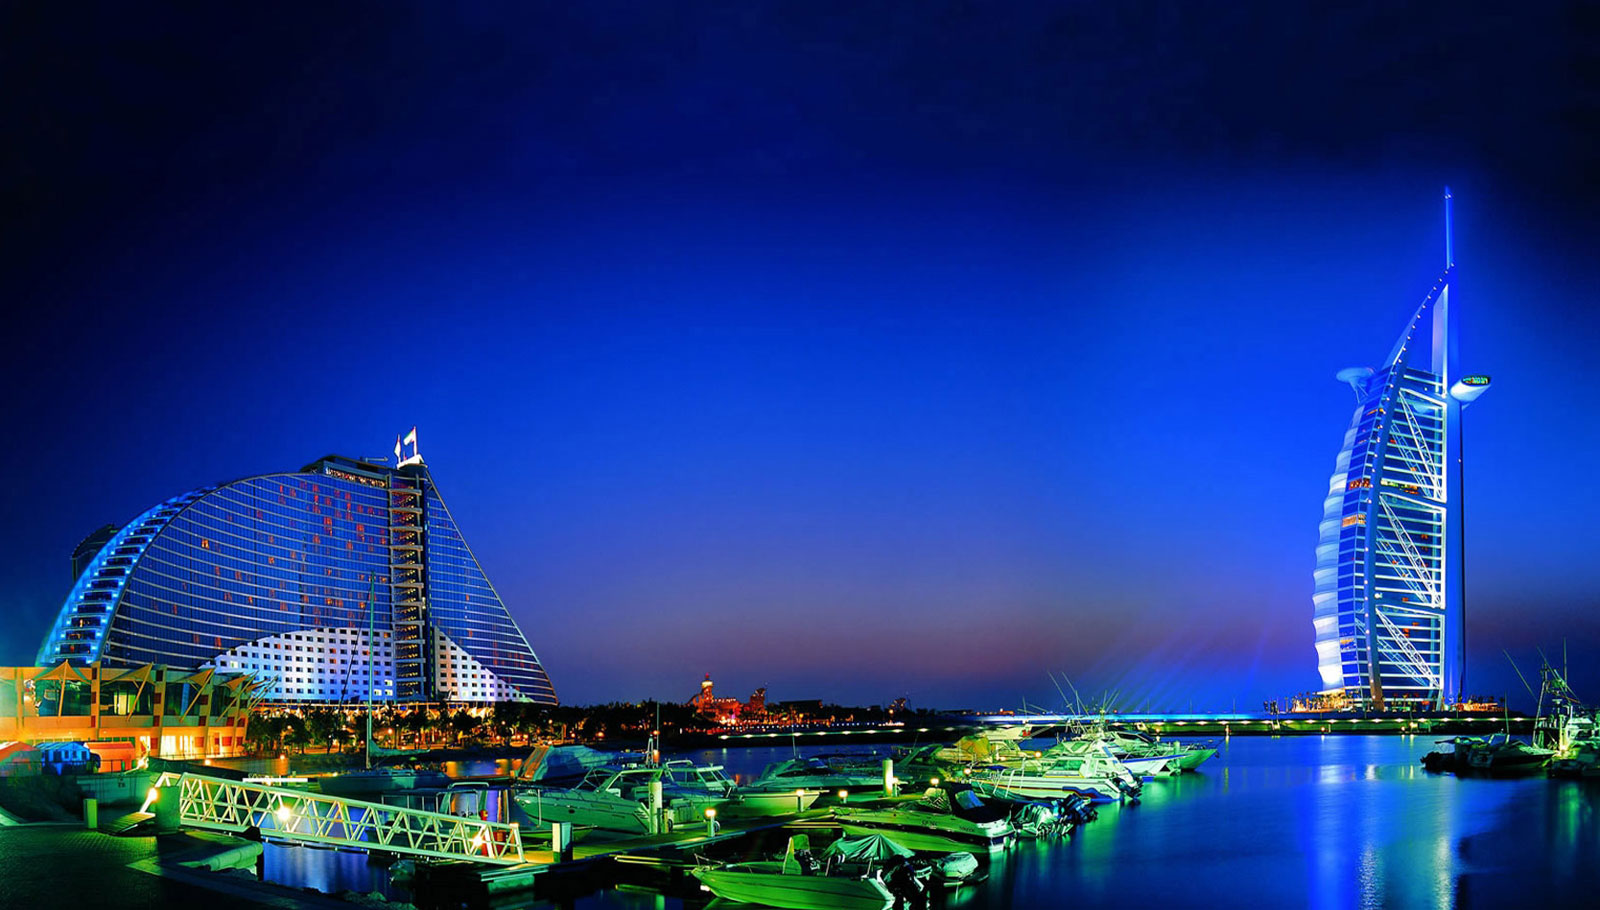 Jumeirah Beach Hotel and Burj Al Arab Hotel - Dubai